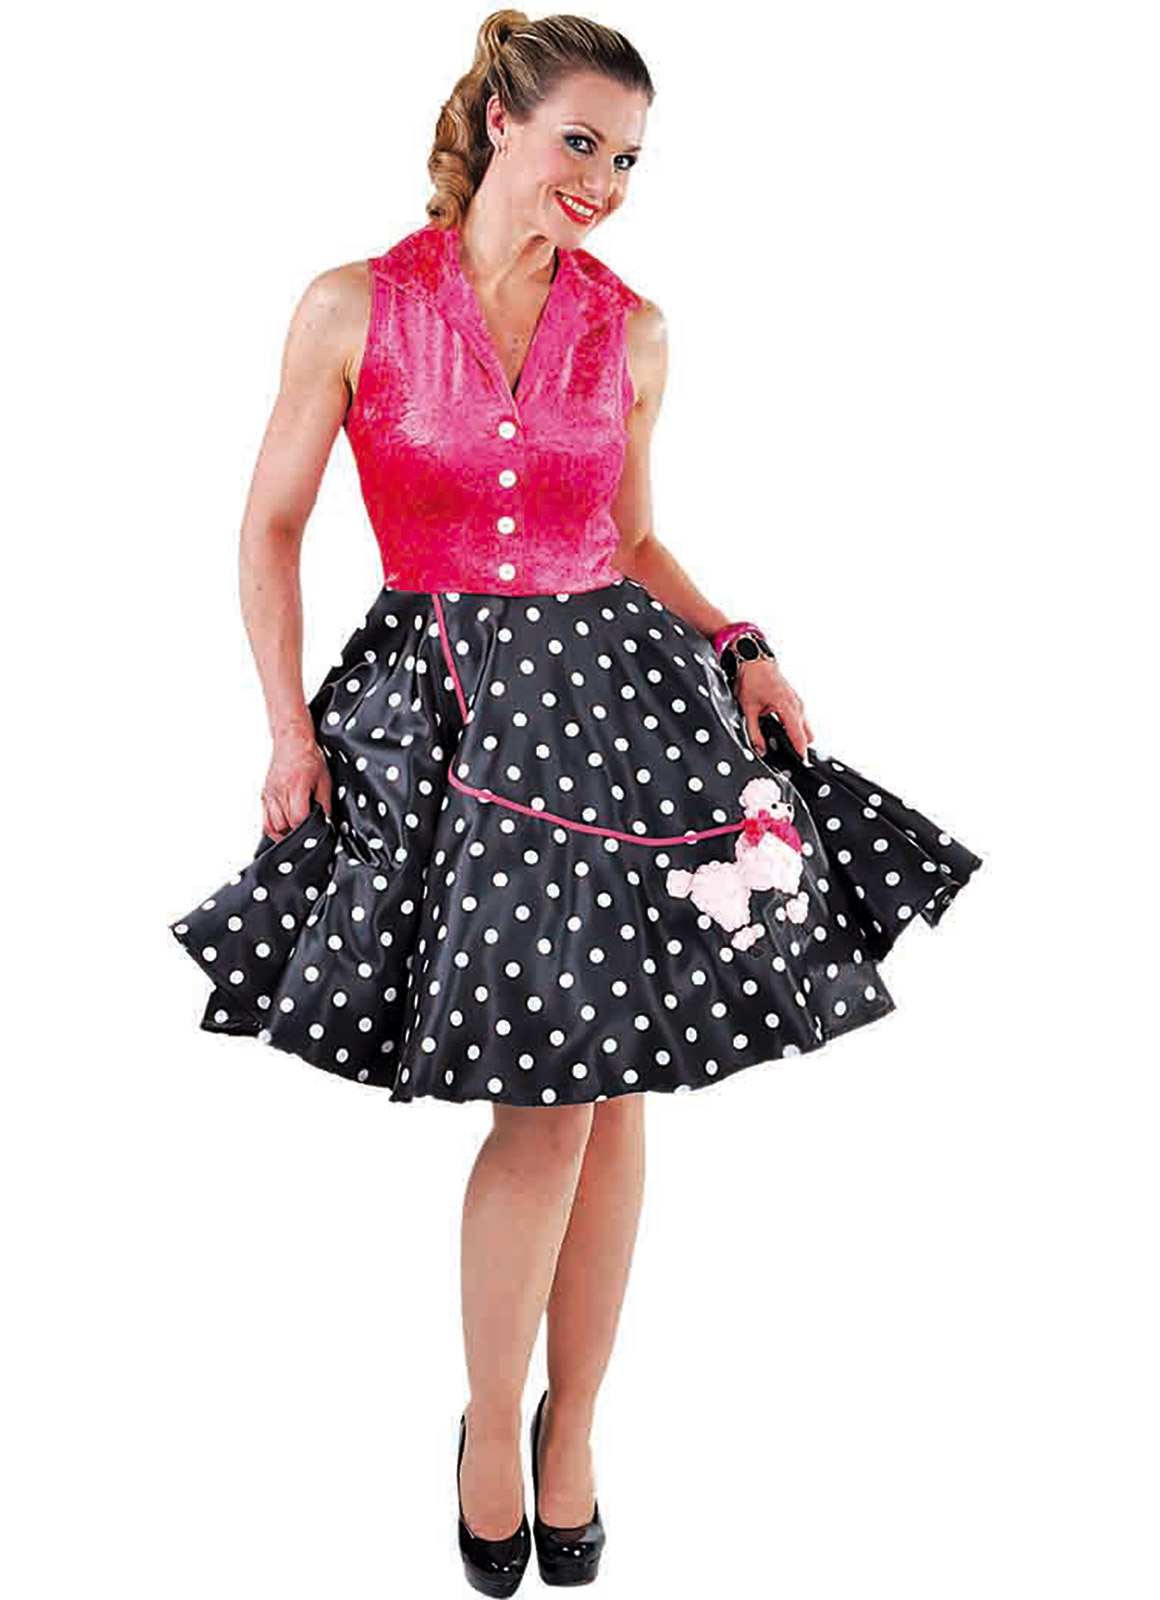 b20546319ca9 Ladies 1950's rock and roll poodle dress – Fantasy World